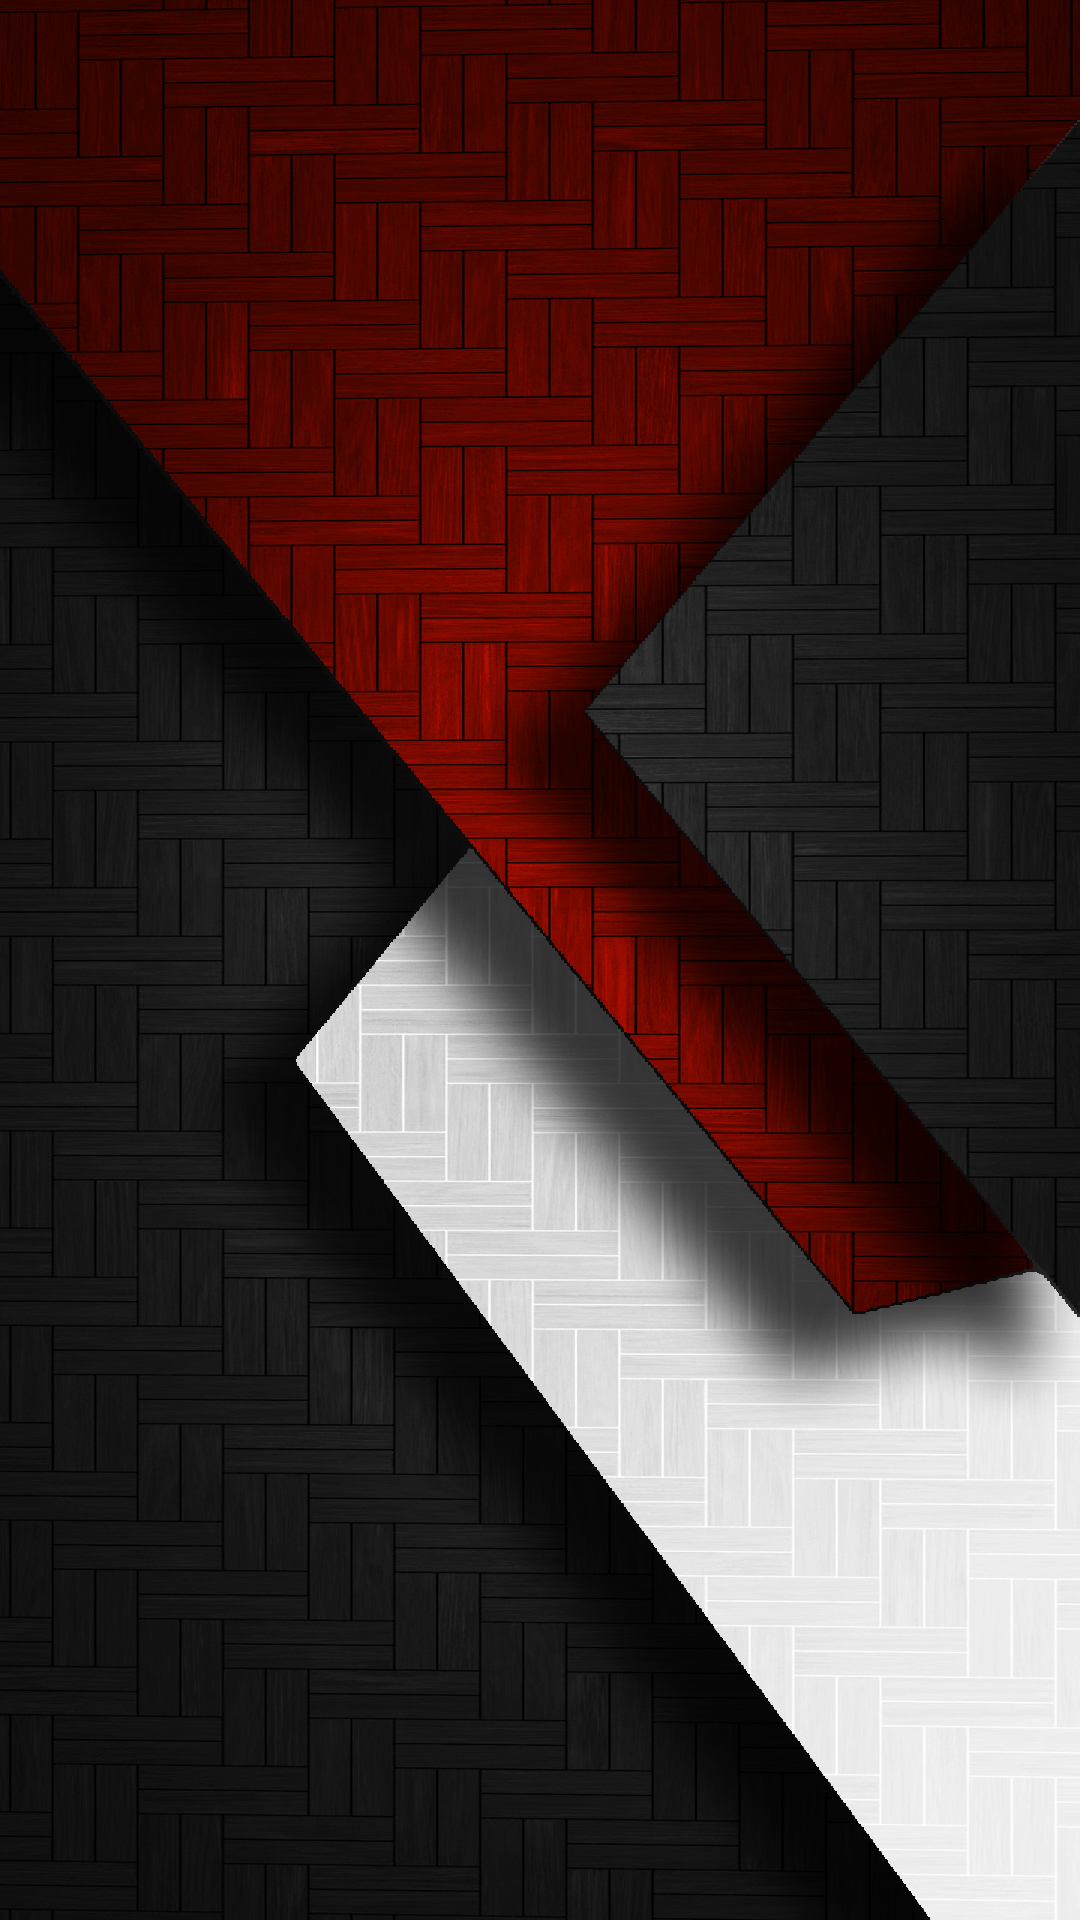 iPhone Wallpapers HD from amazingwallpapers.altervista.org, Material Design Wallpaper Material Design Wallpaper